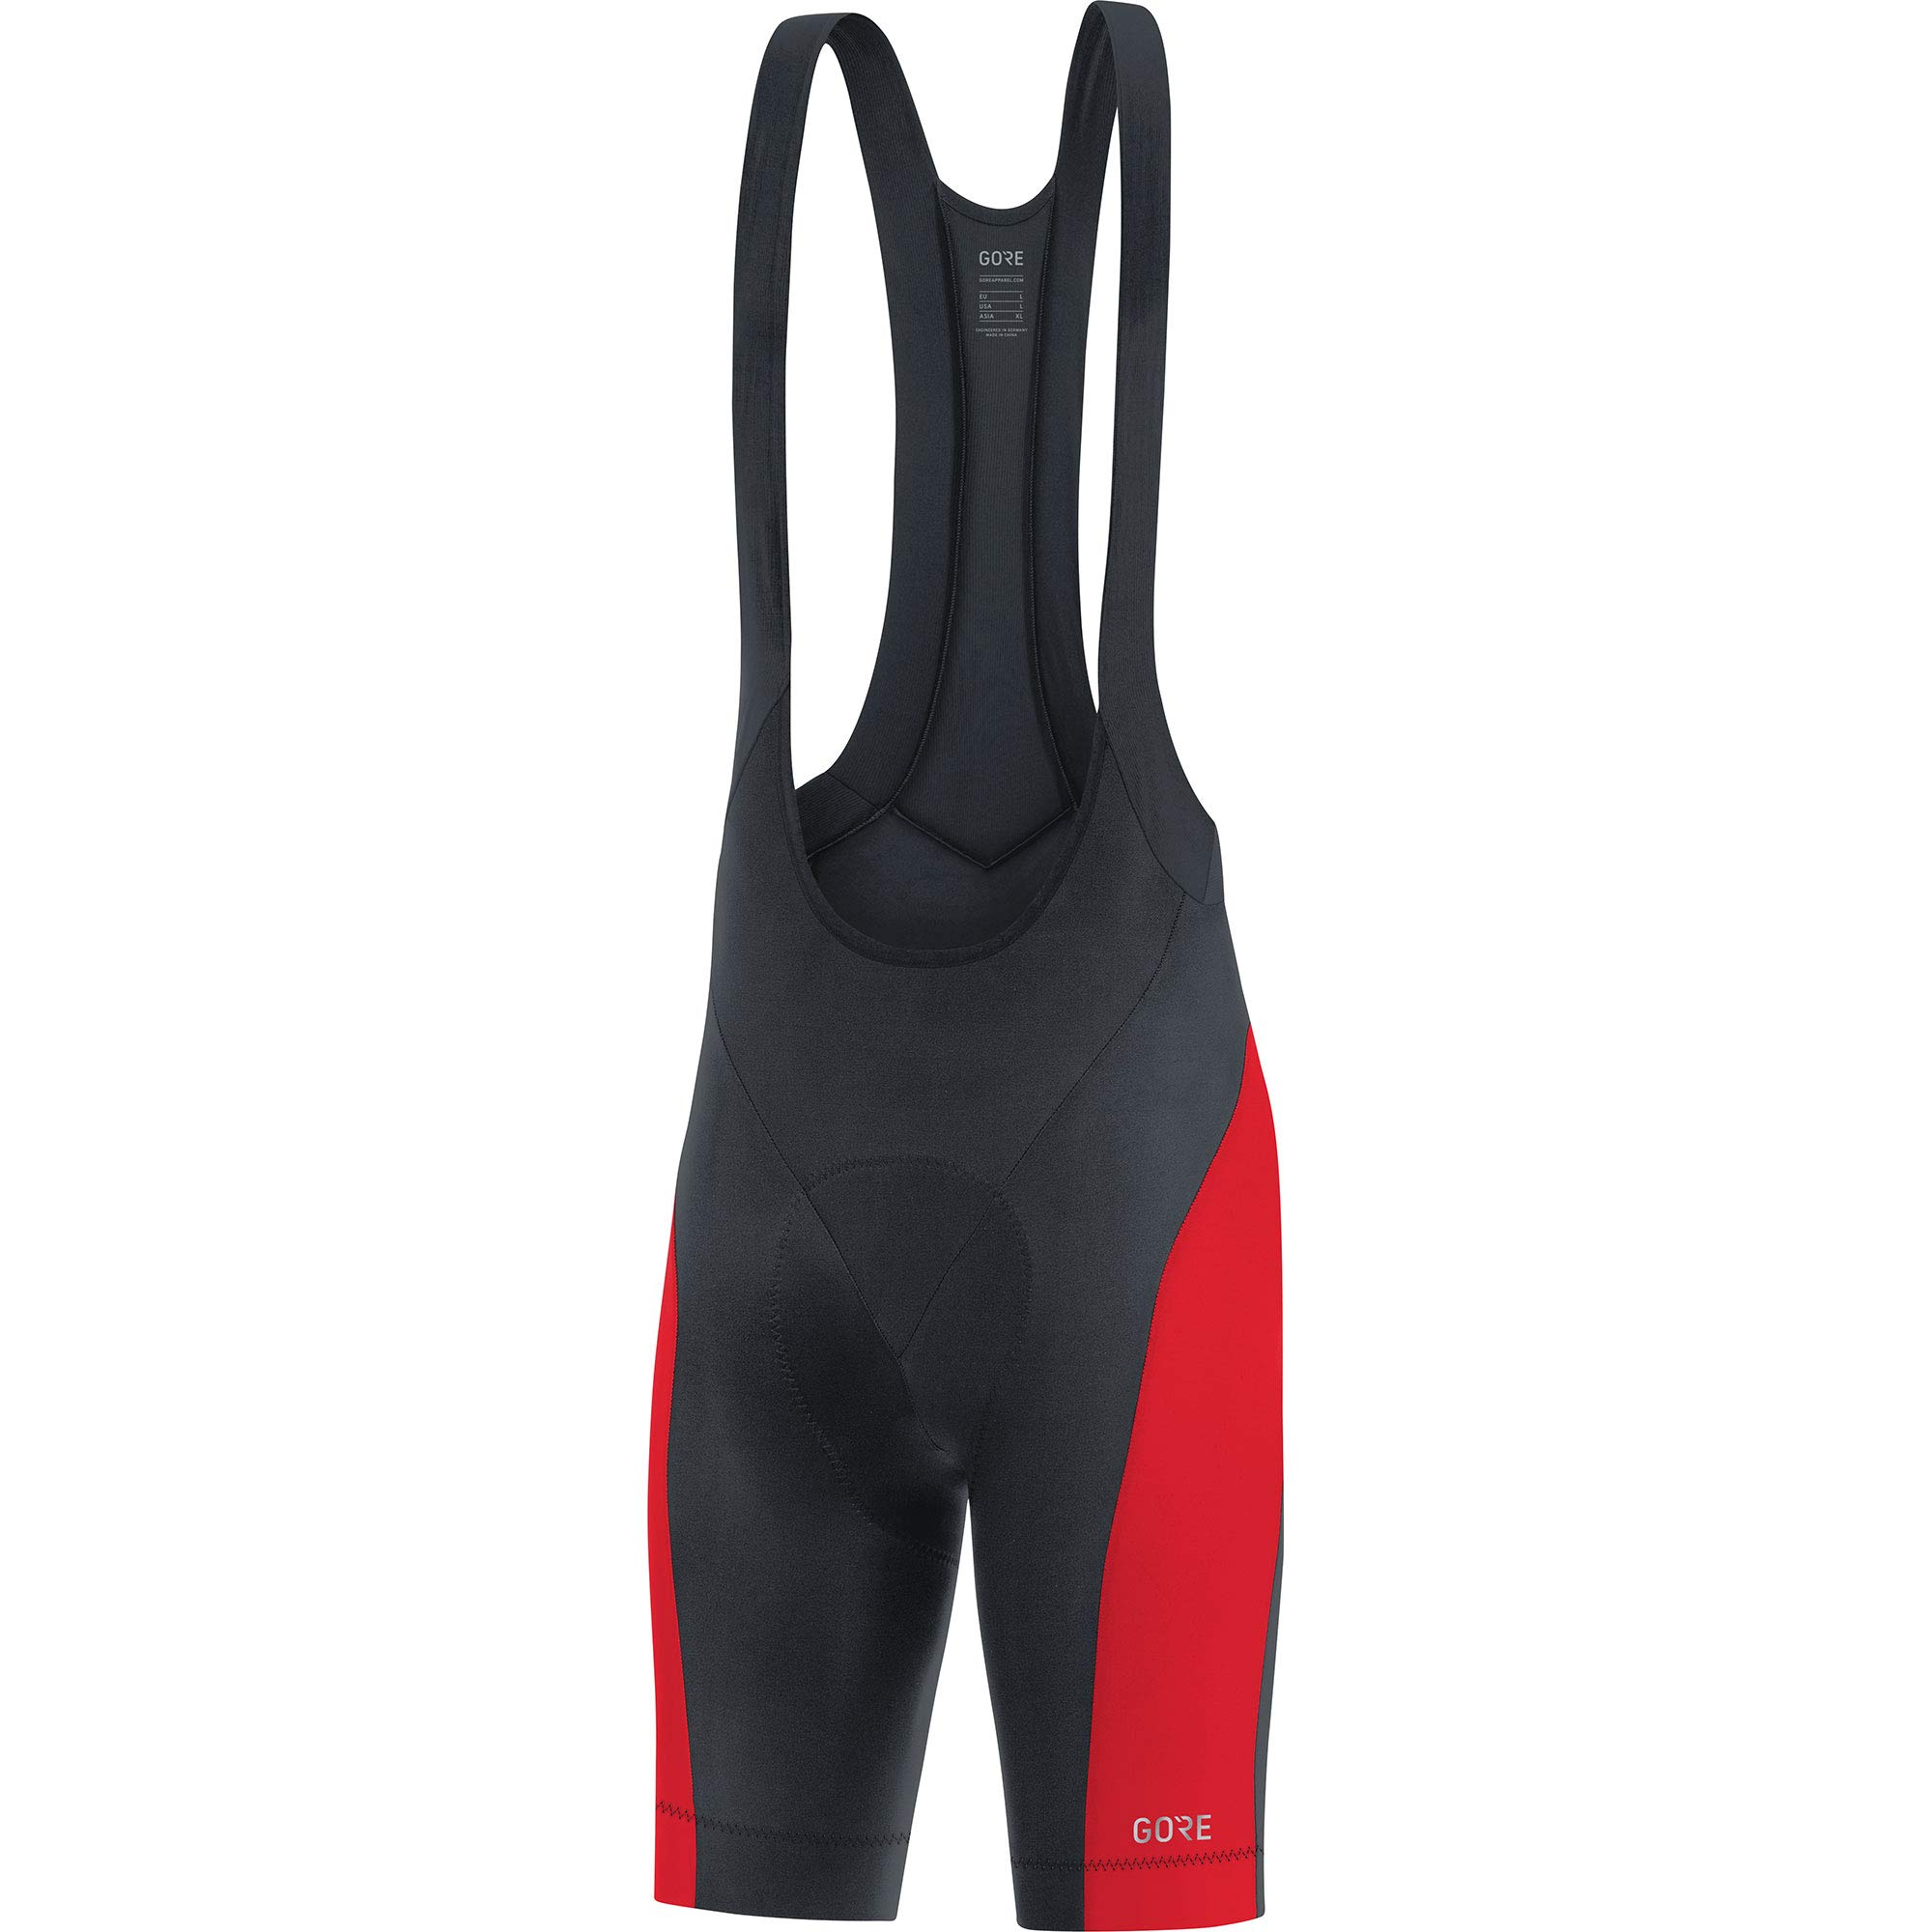 GORE WEAR C3 Men's Cycling Bib Shorts with Seat Insert, Size: S, Color: Black/Rot